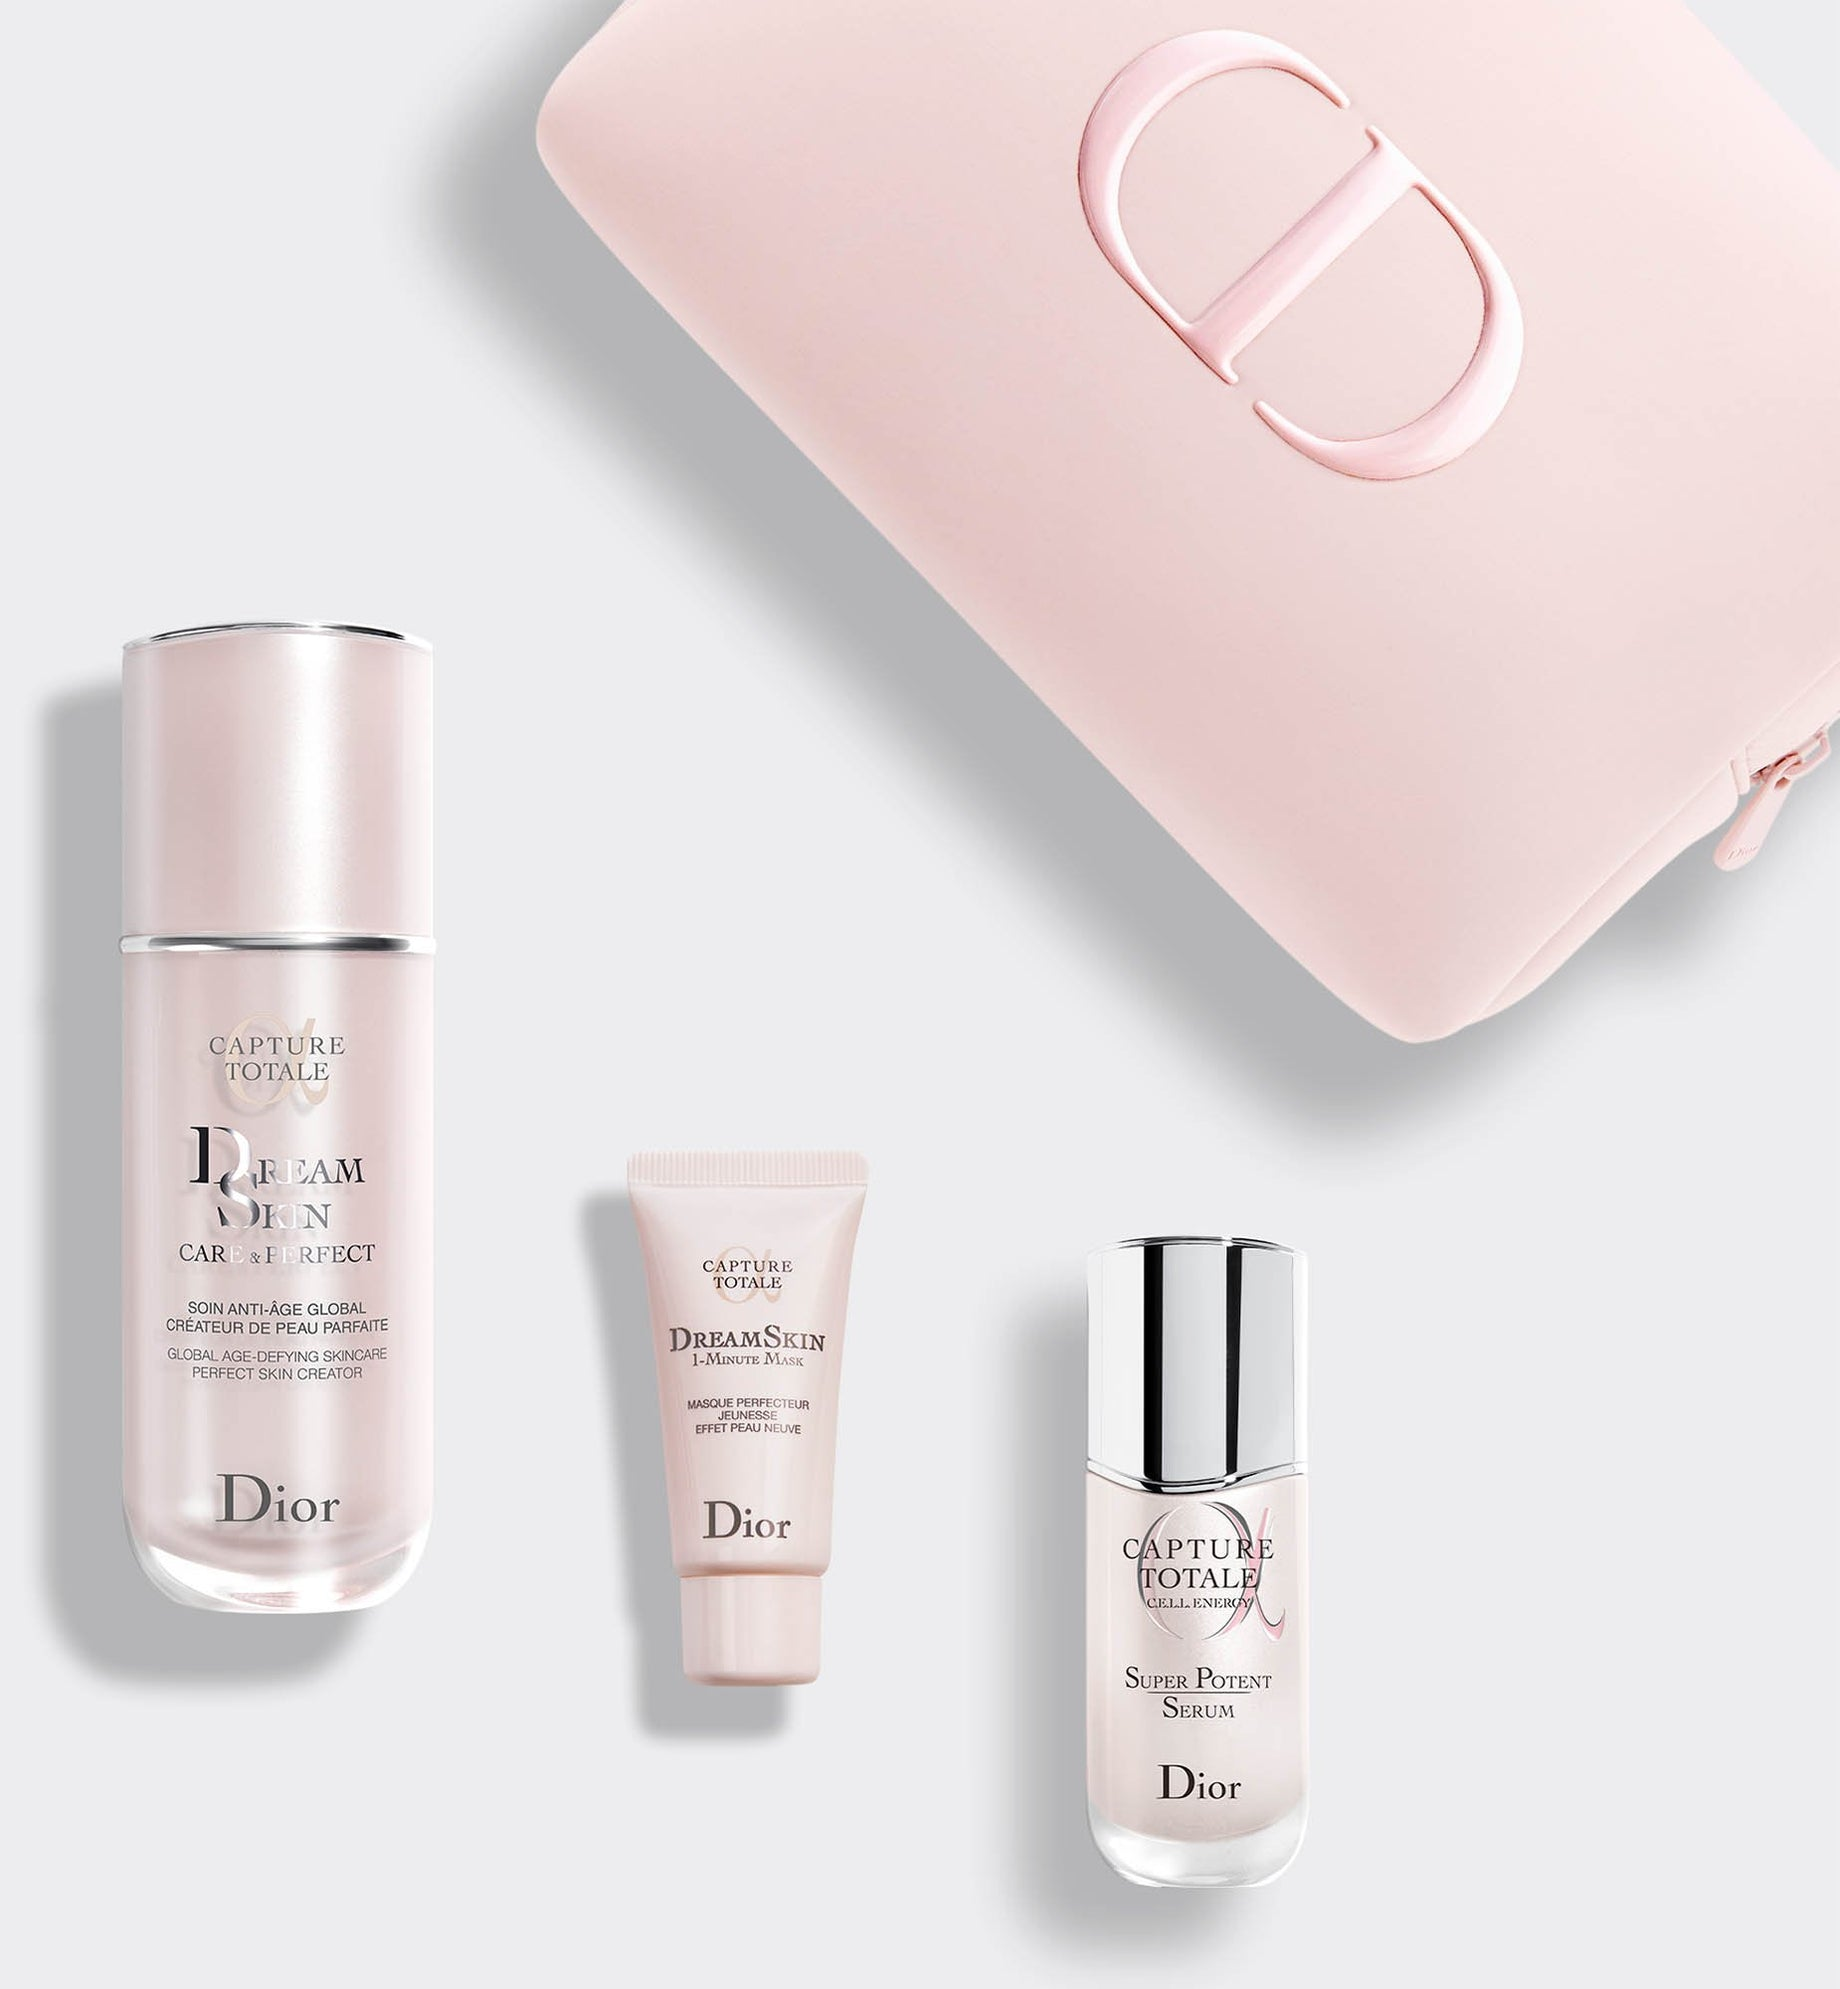 Capture Totale Dreamskin The Total Age-Defying Perfect Skin Creator Ritual - Skincare Fluid, Face Mask and Serum